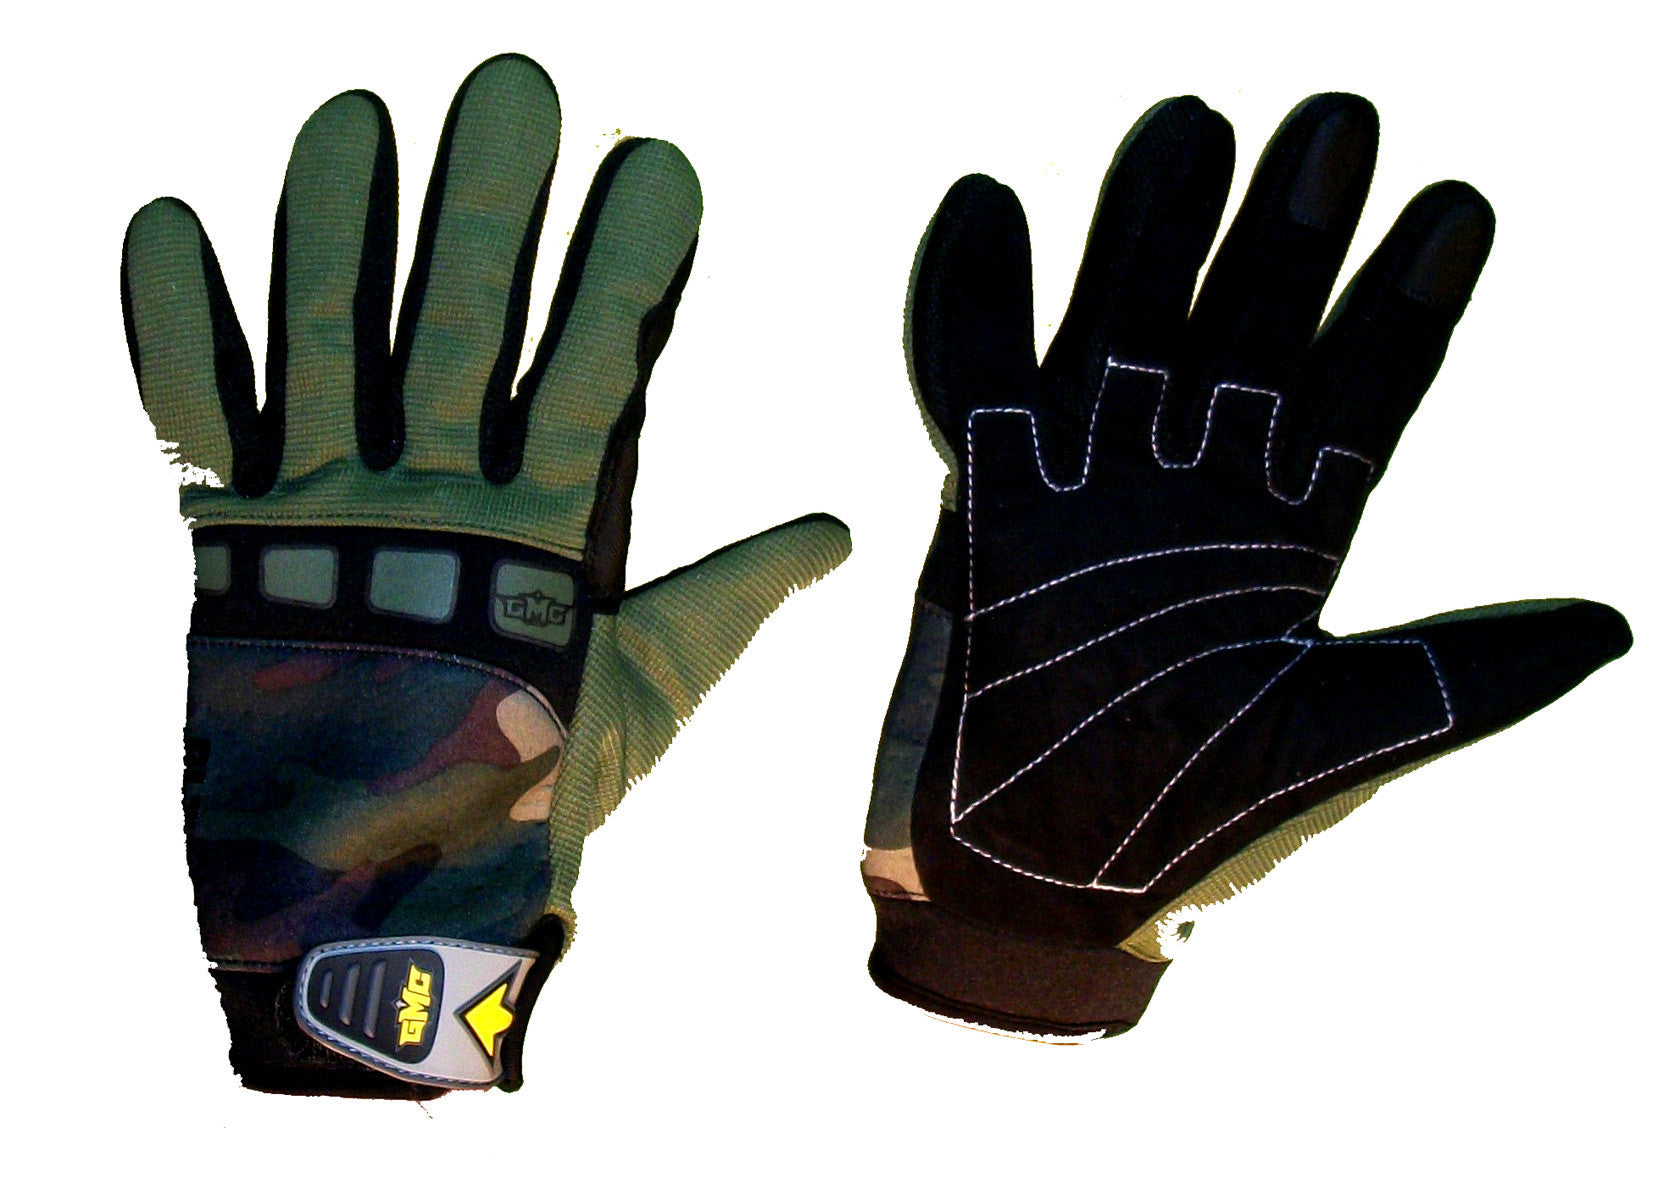 GMC Xhaust-ALT1 Snowboarding Pipe-Gloves-BMX-MOTOX-ATV-Quad-MTB green camo  Small